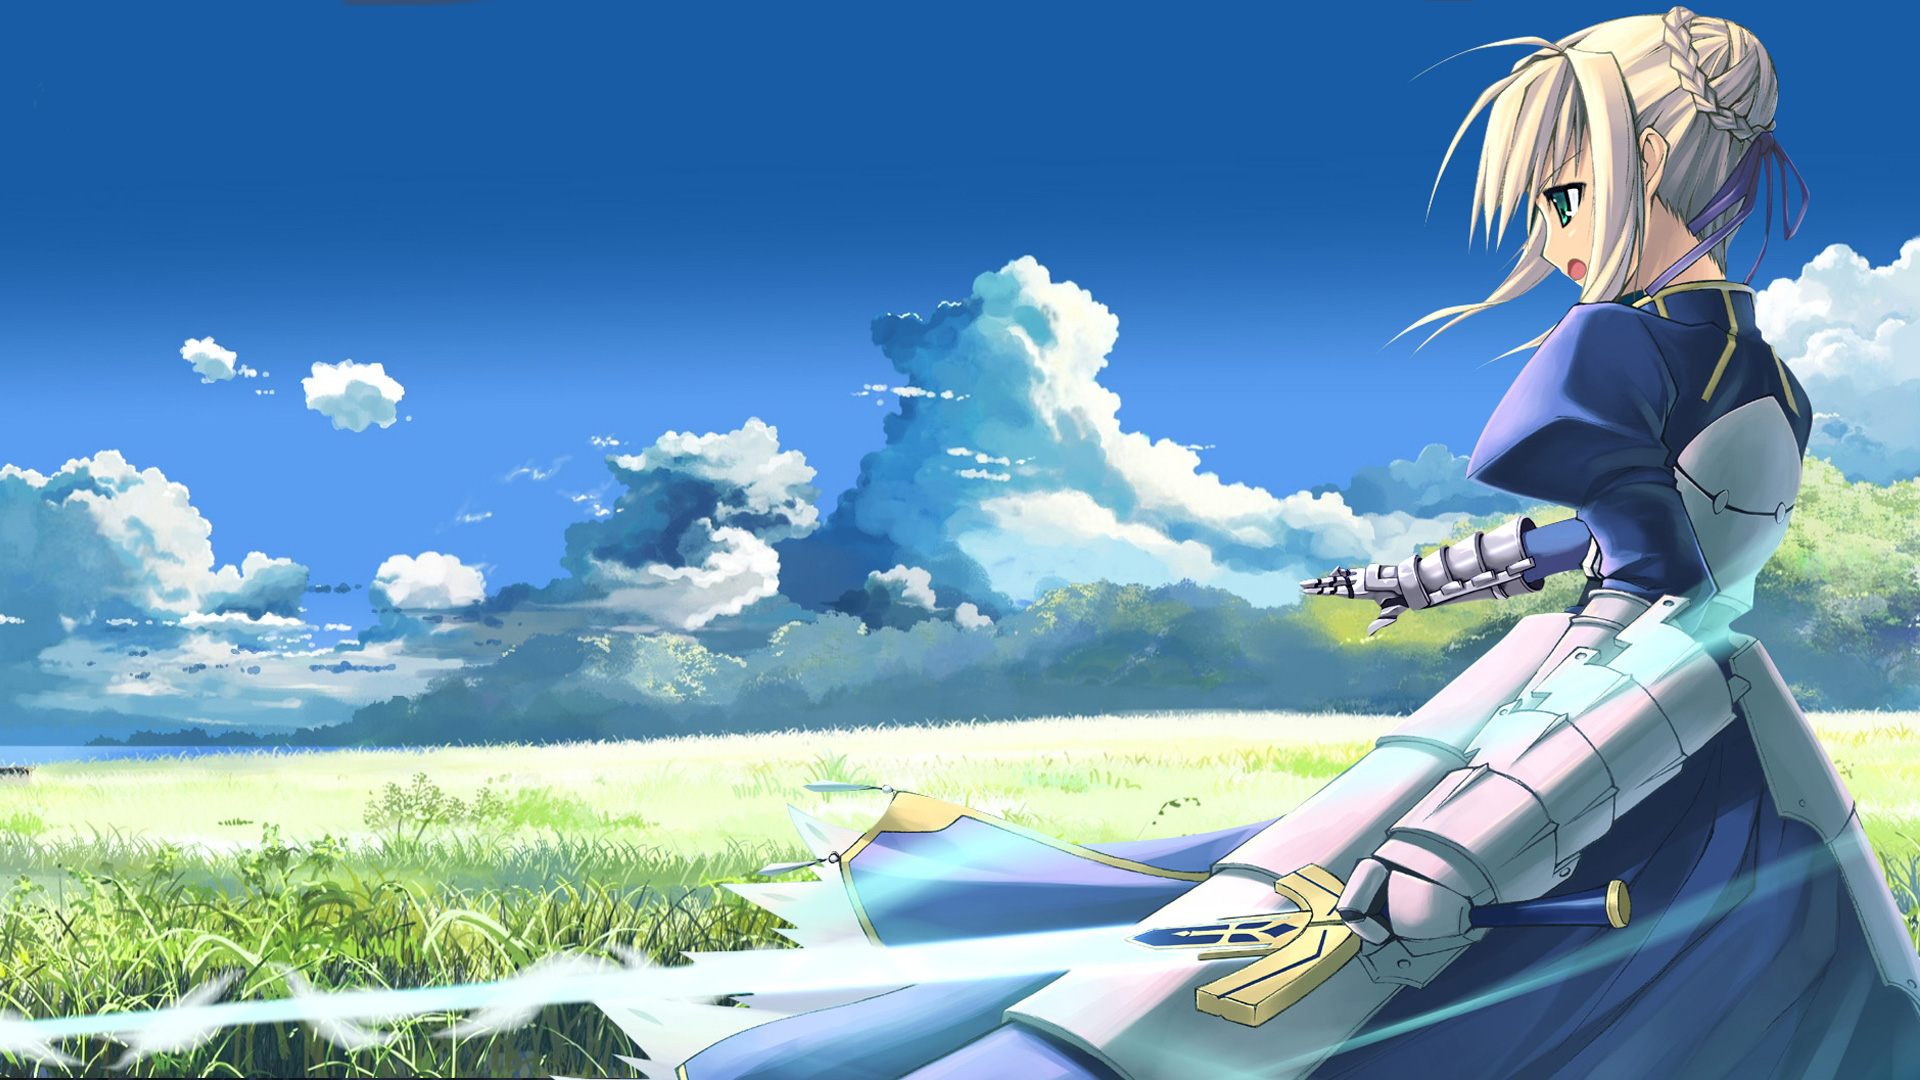 Anime Wallpaper HD 1920x1080 - WallpaperSafari Hd Wallpapers 1920x1080 Anime